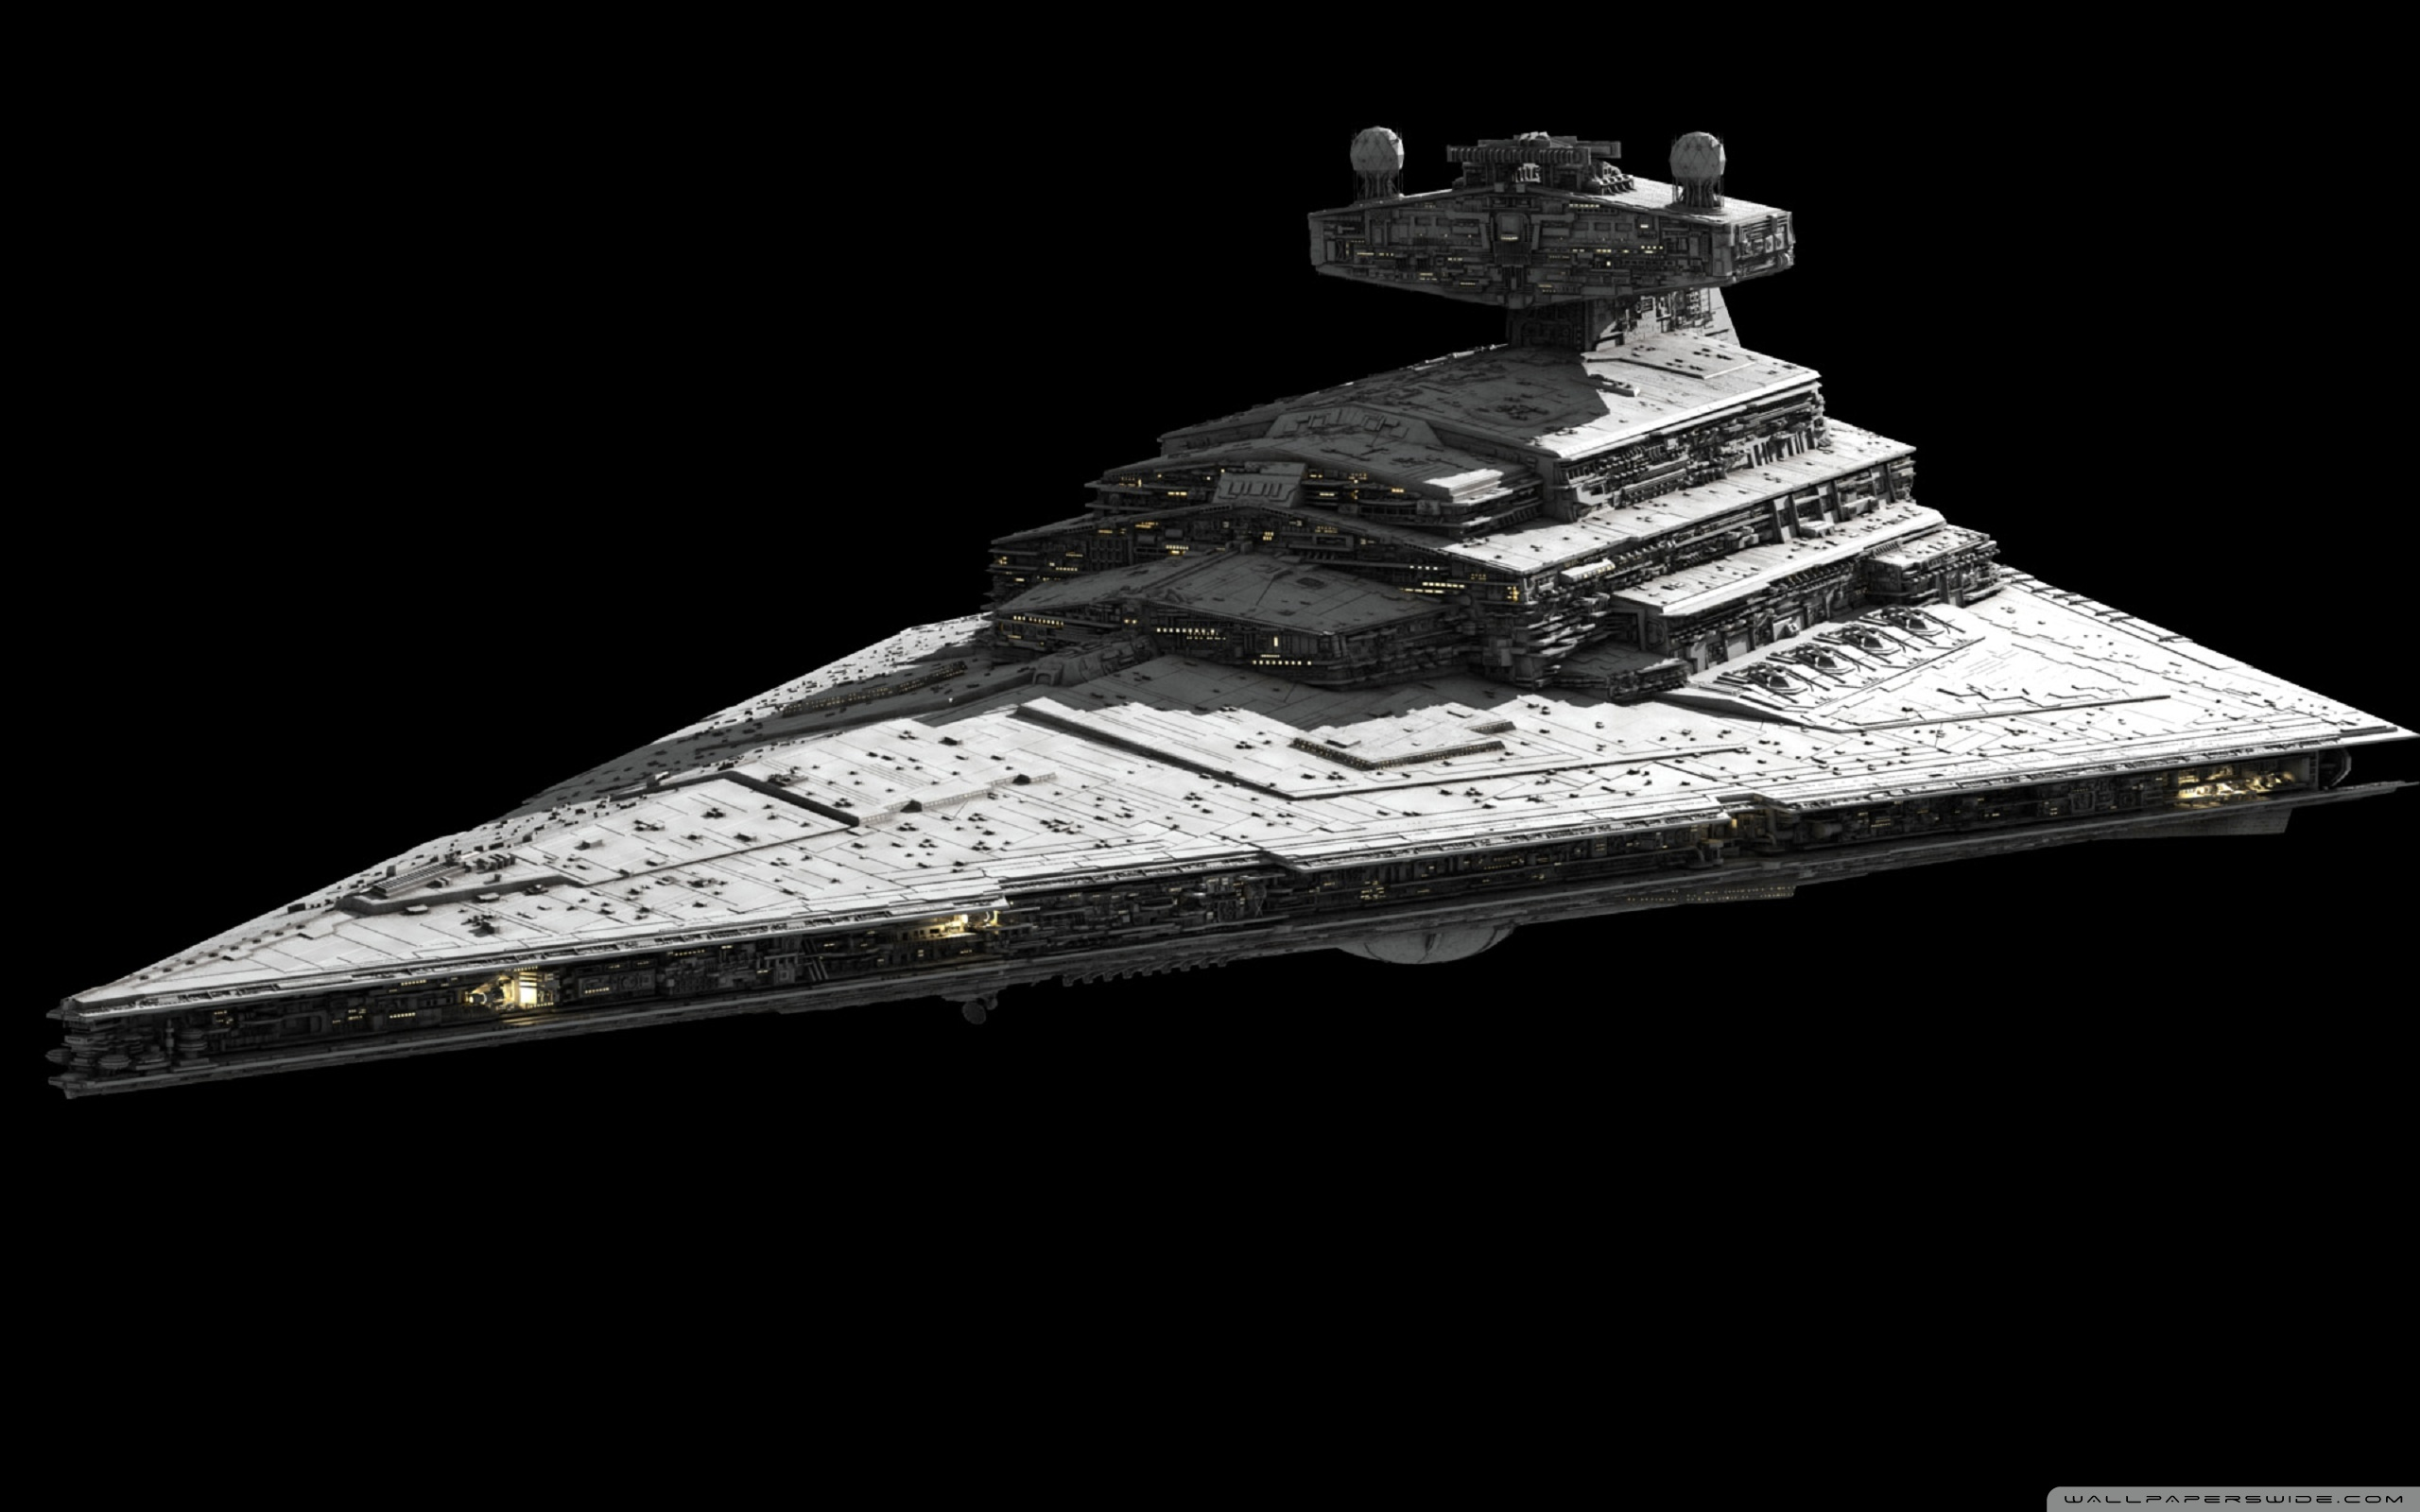 Star Destroyer Wallpaper 1920x1080 Posted By Michelle Mercado